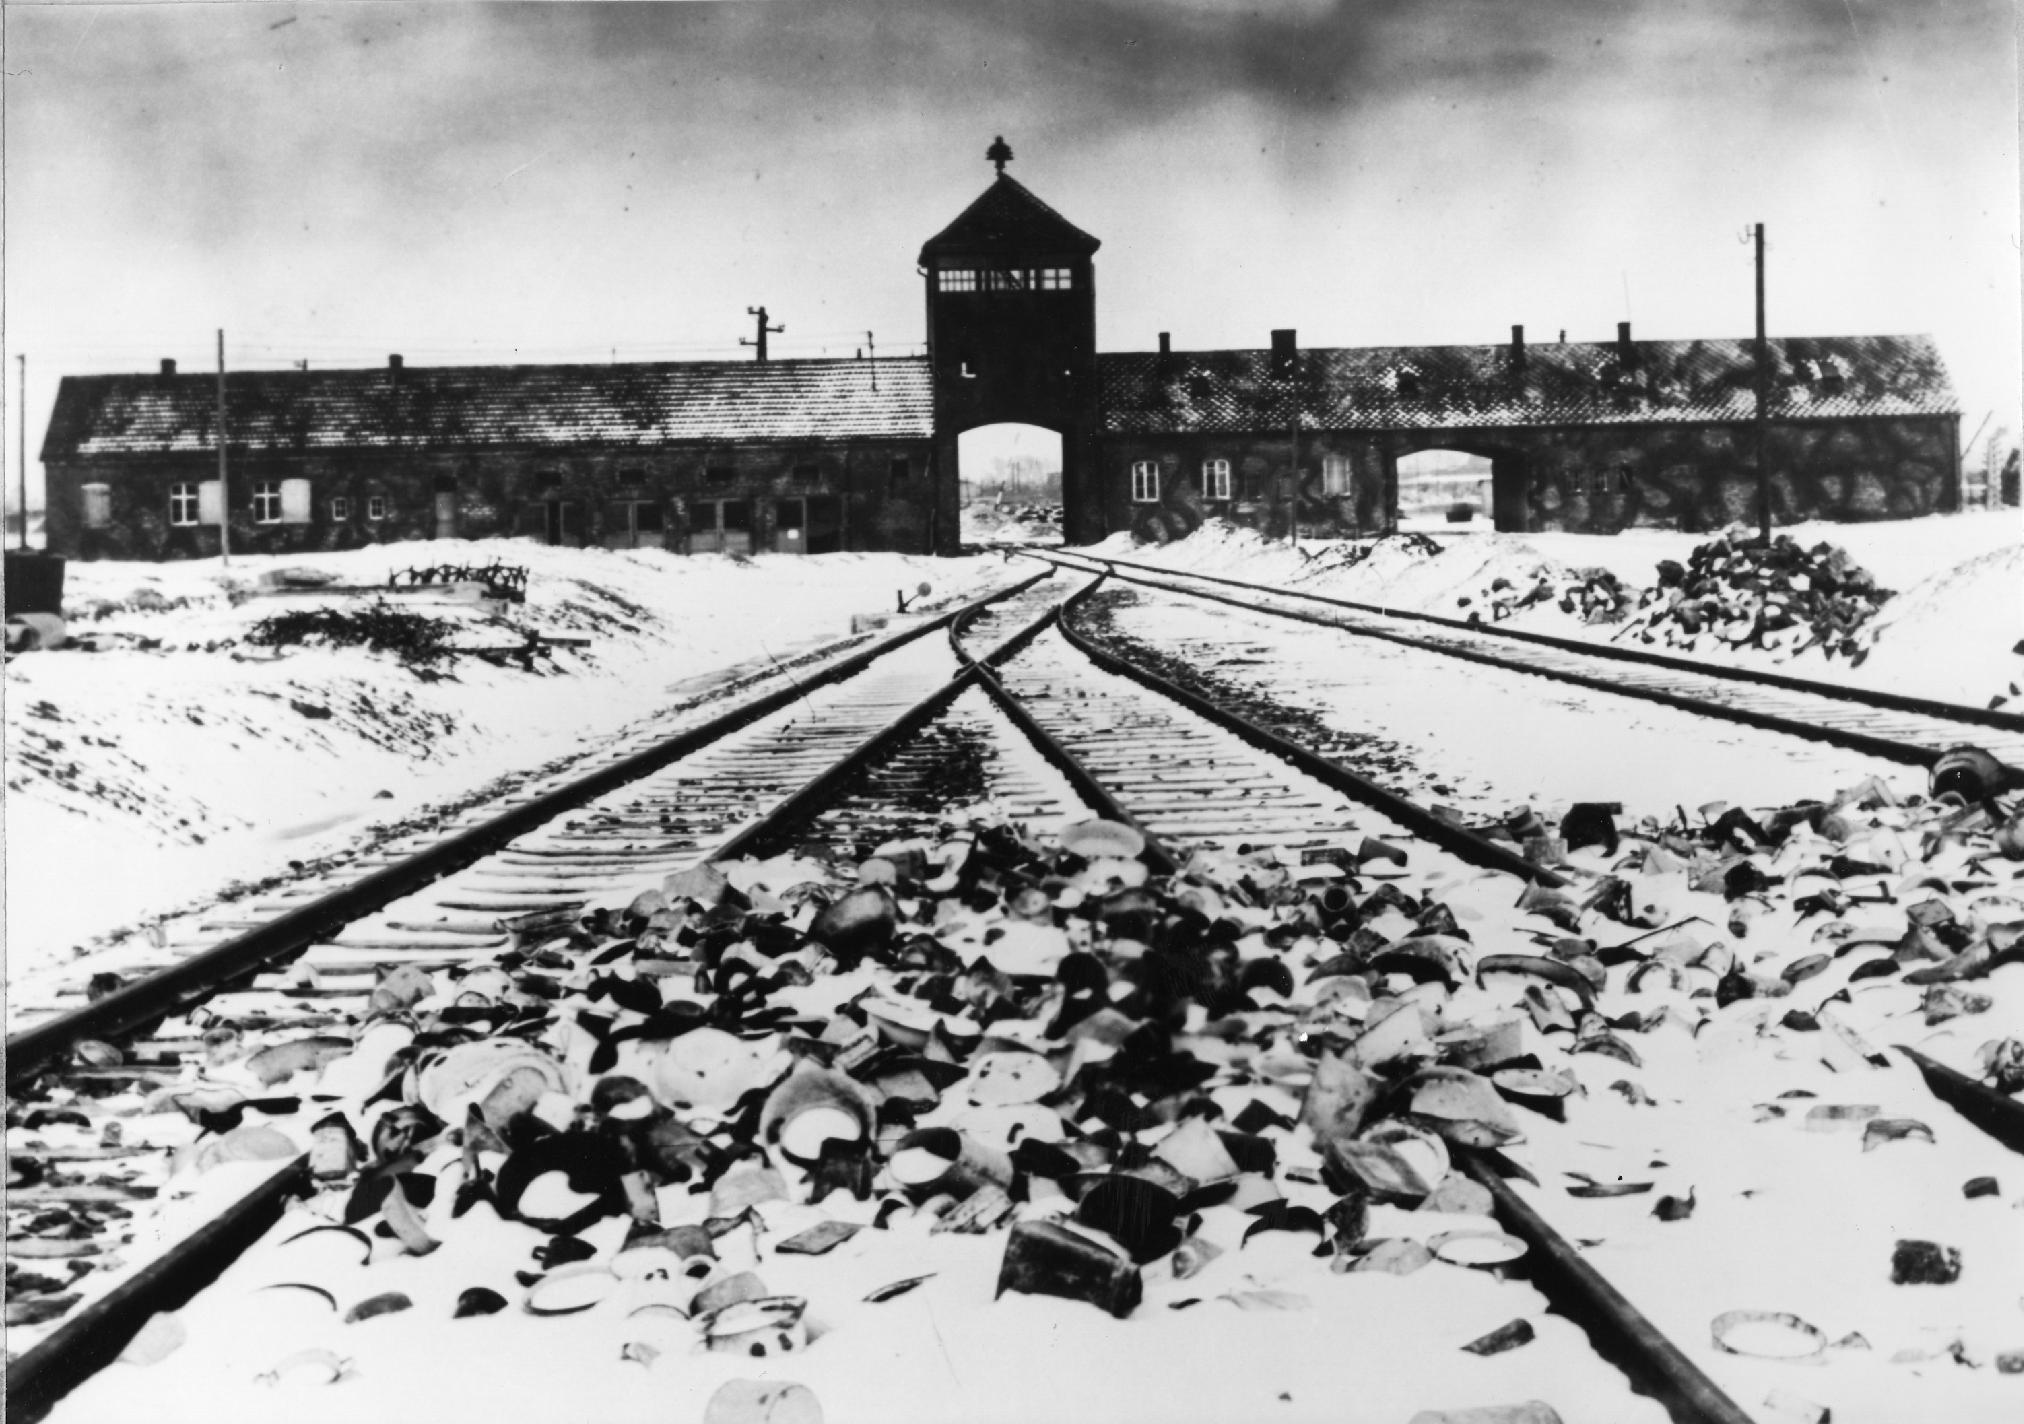 """FILE - This January 1941 file photo shows entry to the concentration camp Auschwitz-Birkenau in Poland, with snow-covered railtracks leading to the camp. The Auschwitz-Birkenau camp was the largest camp where people were terminated during the fascist regime rule of dictator Adolf Hitler over Germany during World War II. Germany has launched a war crimes investigation against an 87-year-old Philadelphia man it accuses of serving as an SS guard at the Auschwitz death camp, The Associated Press has learned, following years of failed U.S. Justice Department efforts to have the man stripped of his American citizenship and deported. Johann """"Hans"""" Breyer, a retired toolmaker, admits he was a guard at Auschwitz during WWII, but told the AP he was stationed outside the facility and had nothing to do with the wholesale slaughter of some 1.5 million Jews and others behind the gates. (AP Photo/File)"""